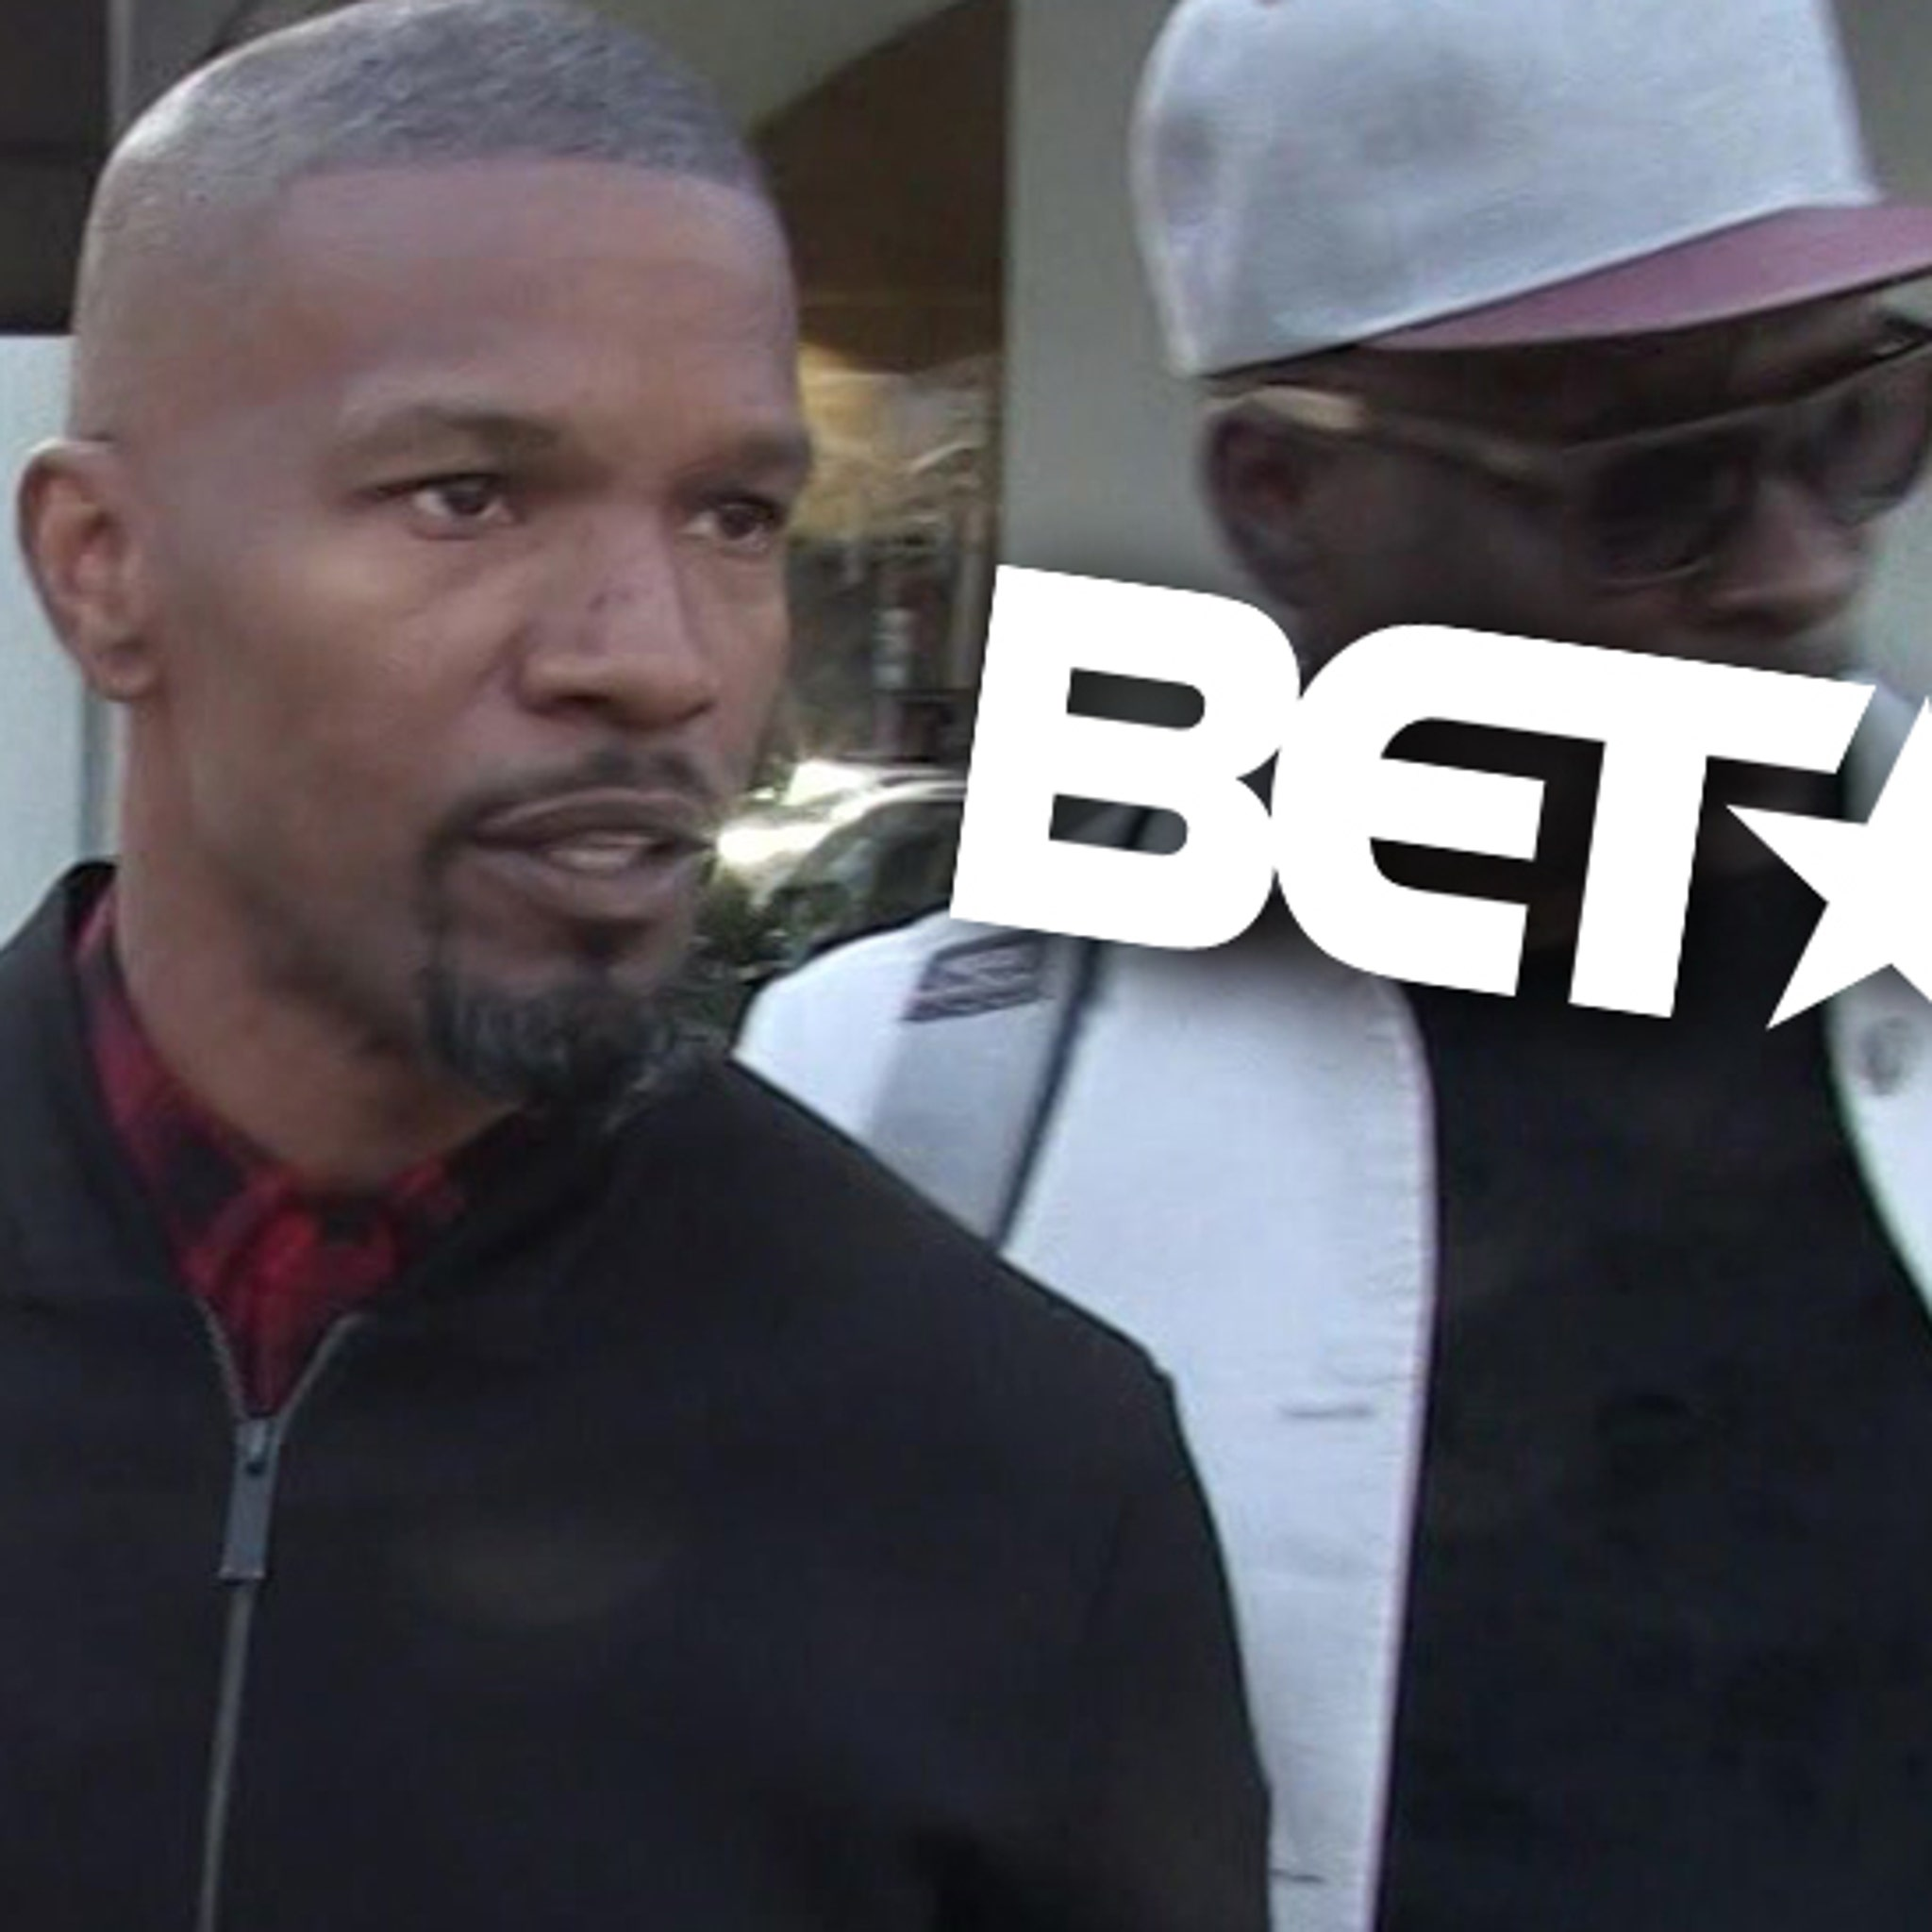 Jamie Foxx Drops $500k On BET After-Party